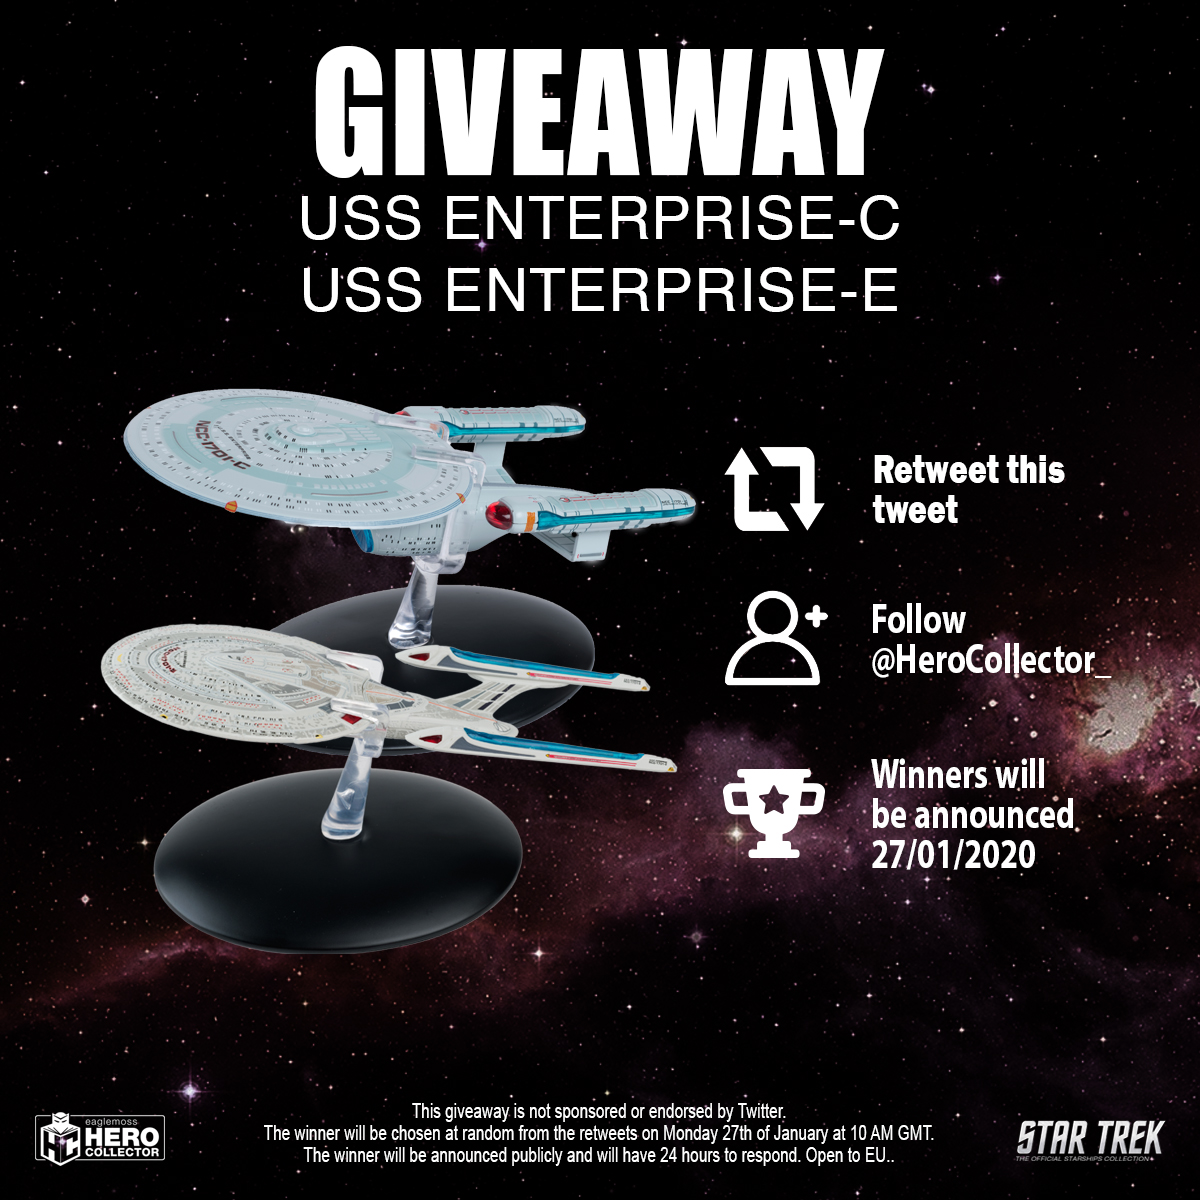 In honour of #StarTrekPicard day were giving away the Enterprise-C from the classic #StarTrek #TNG episode Tomorrows Way, and the Enterprise-E as featured in the Star Trek: The Next Generation movies. #FreebieFriday #FridayFeeling #Giveaway